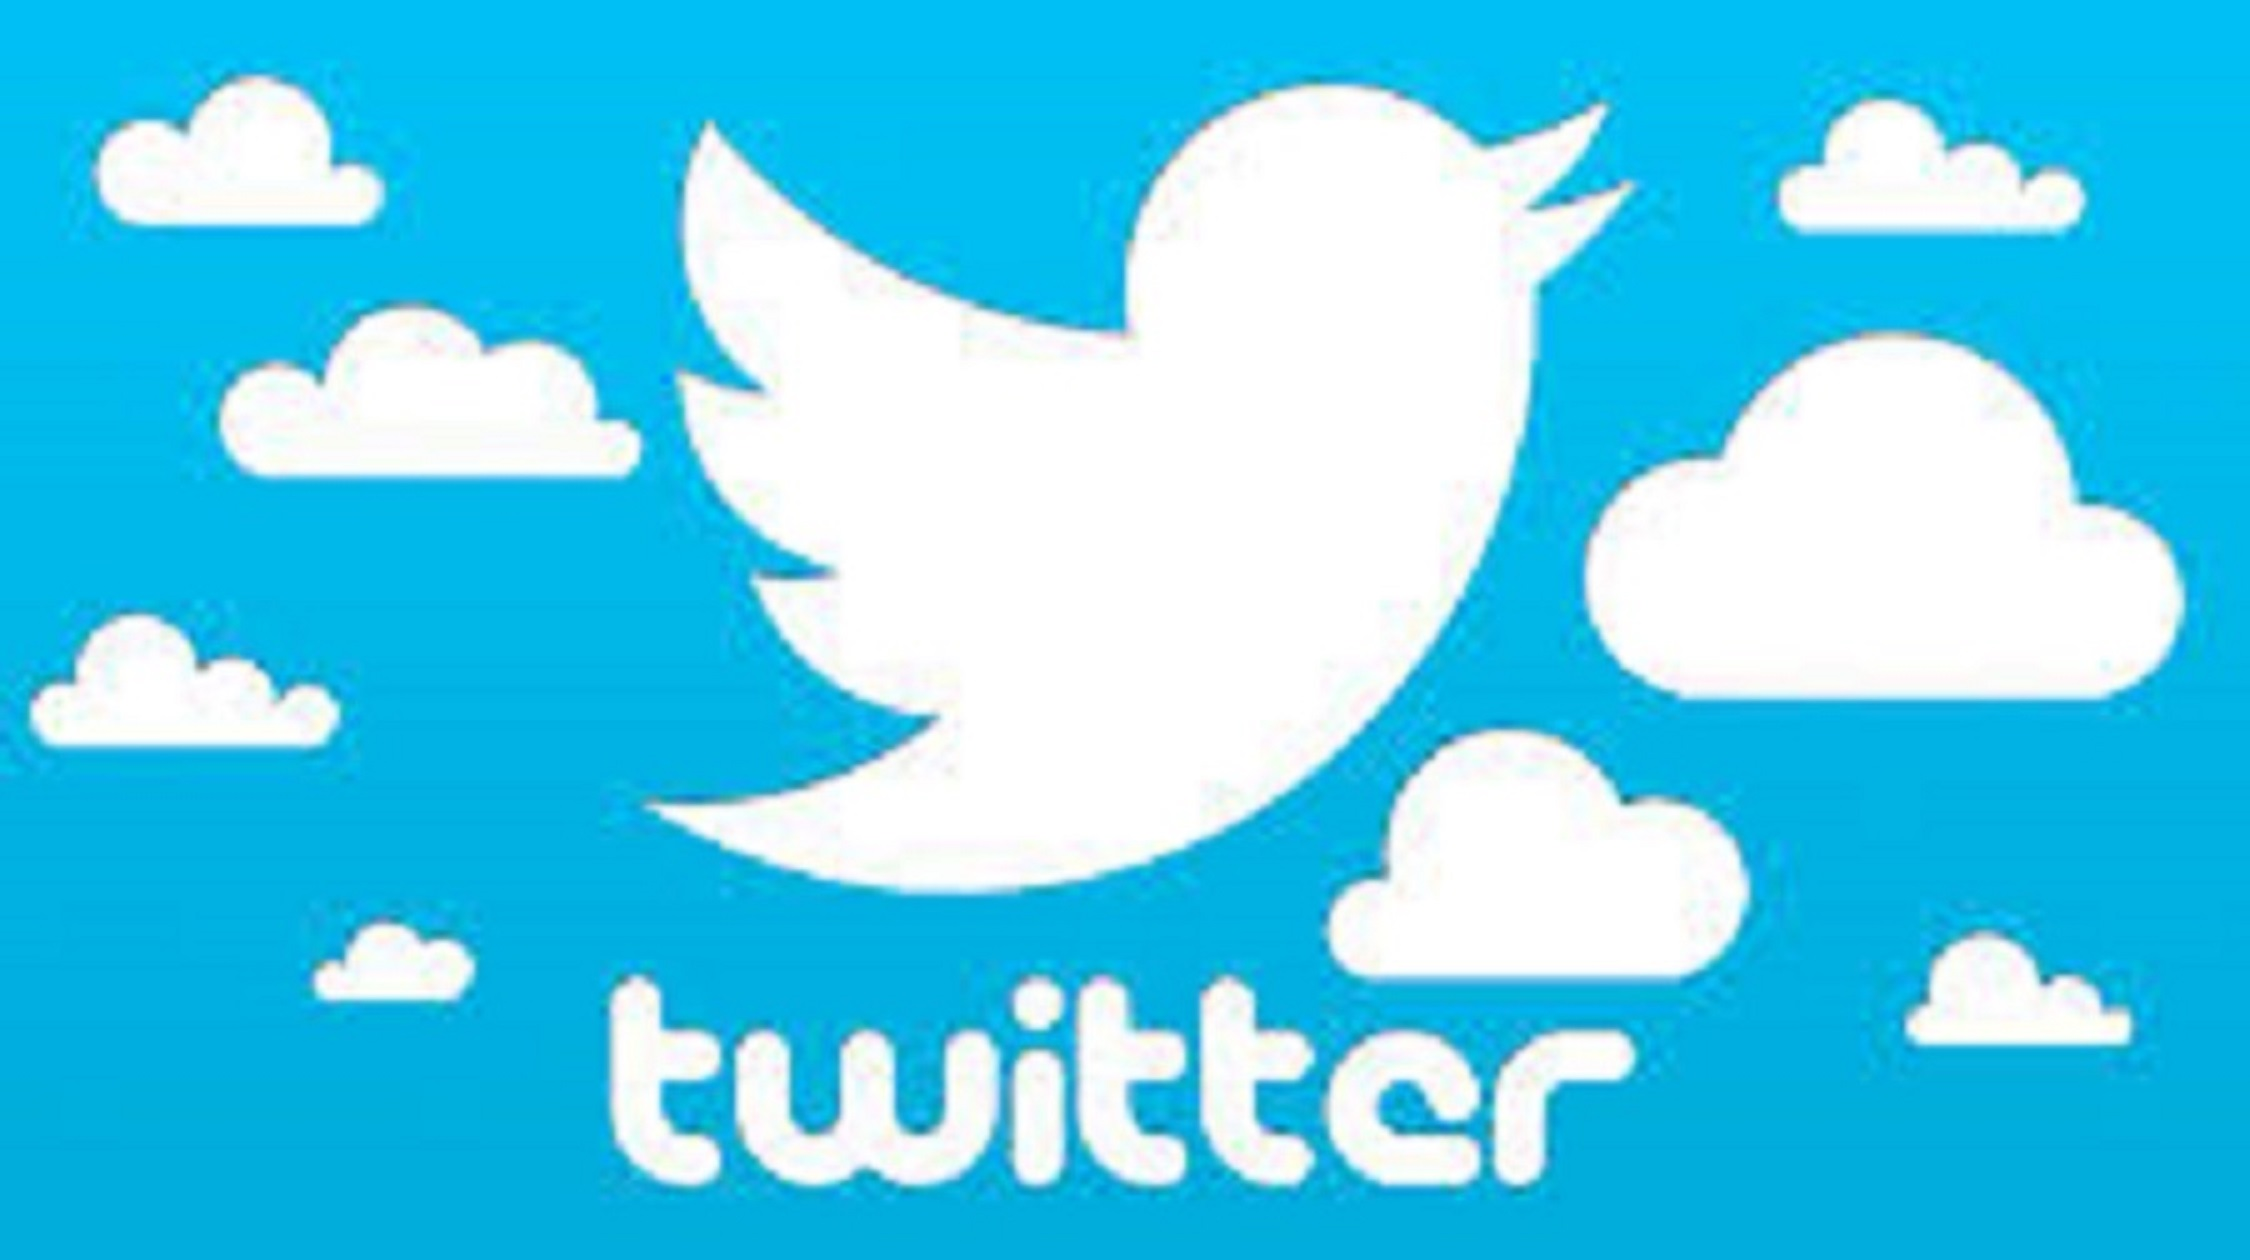 5,000 Good Quality twitter followers Or 1,000 Twitter Retweets Or 1,000 Twitter Favorites with in 24 hours